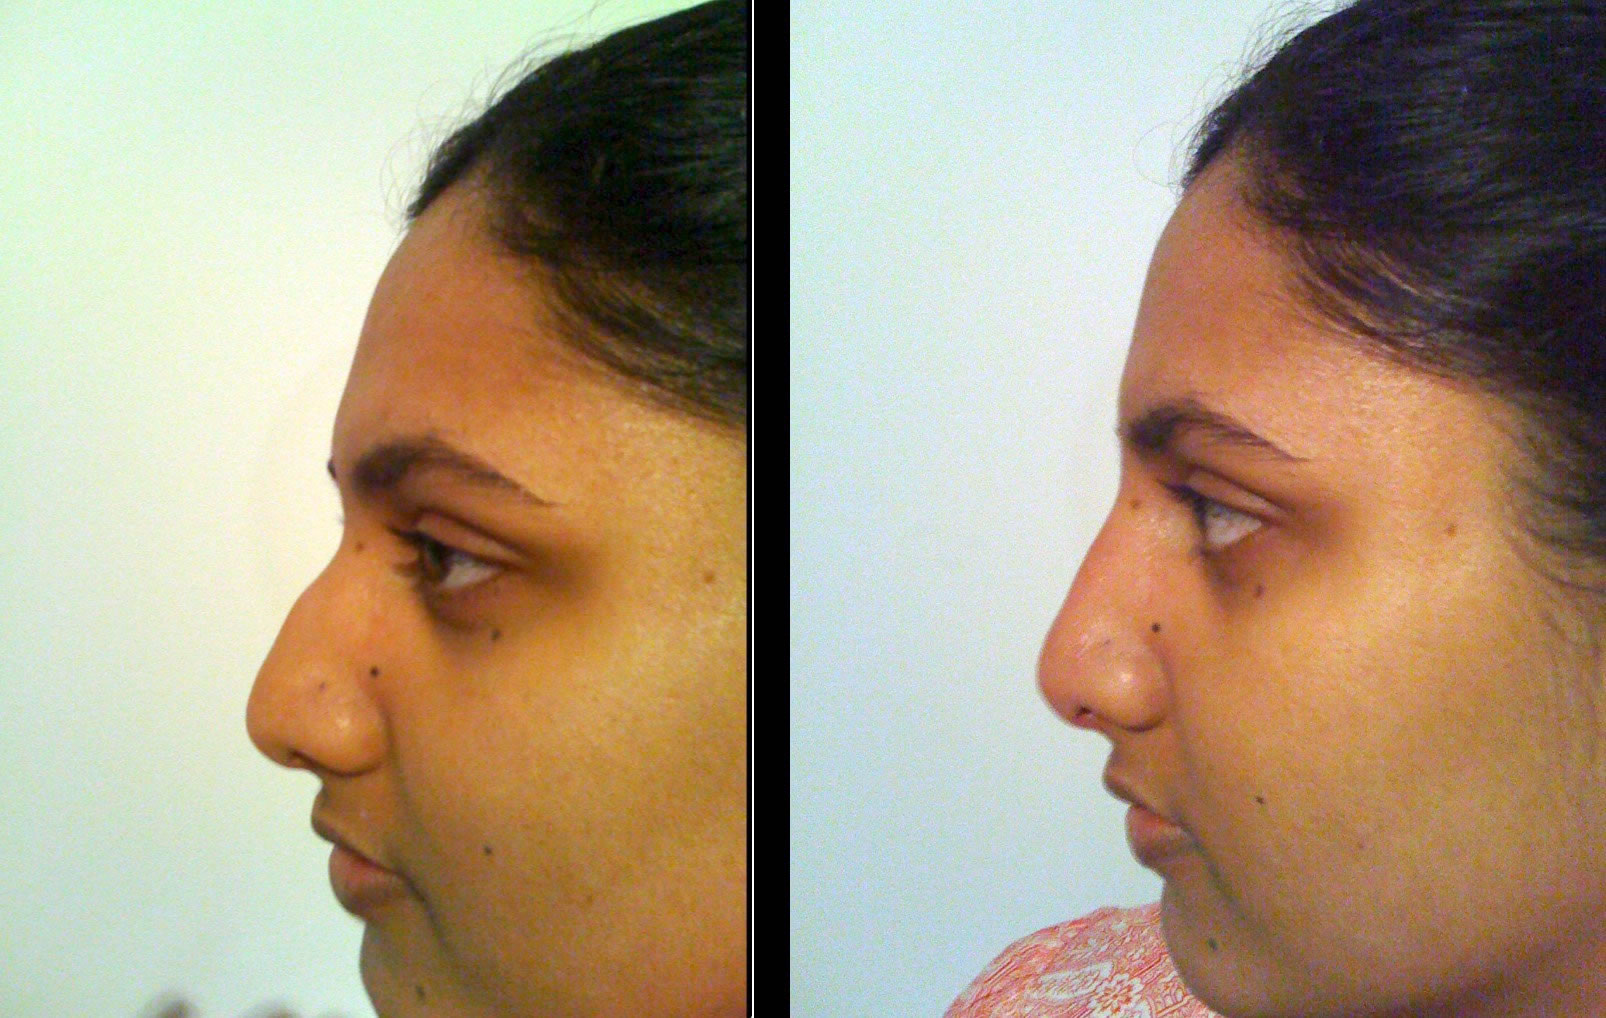 Non invasive nose augmentation before & after